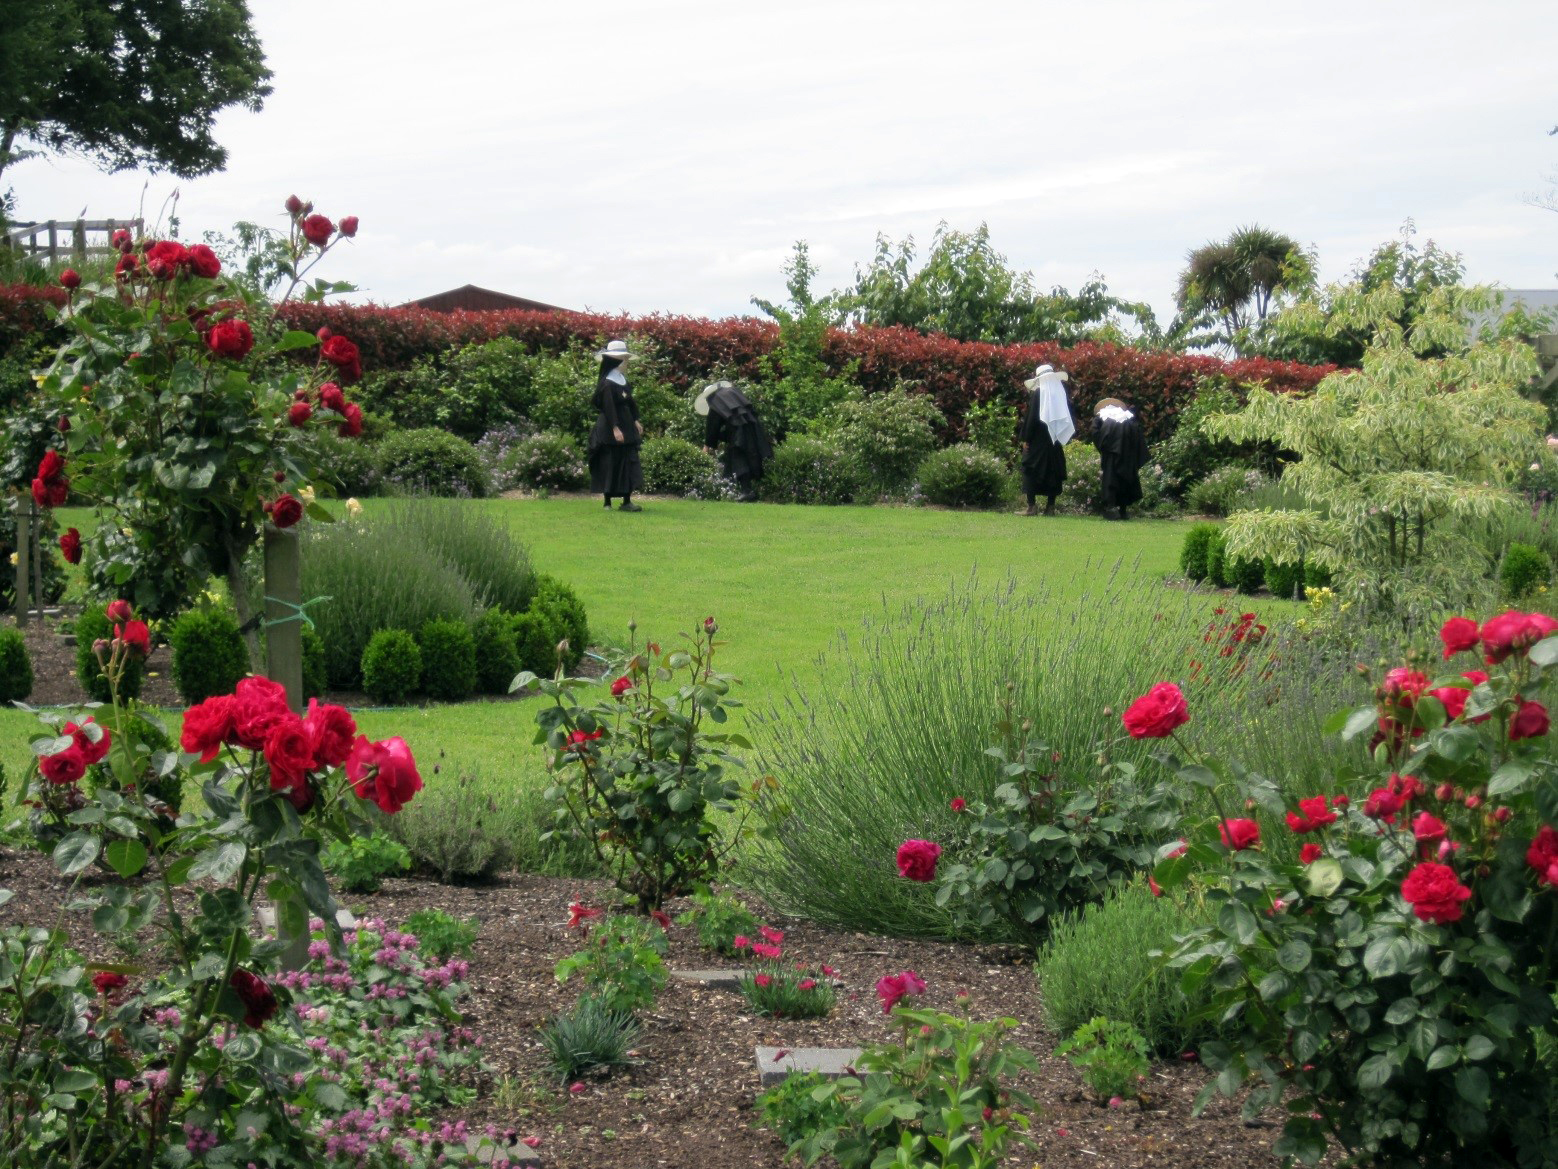 Each rose bed represents a mystery of the Rosary